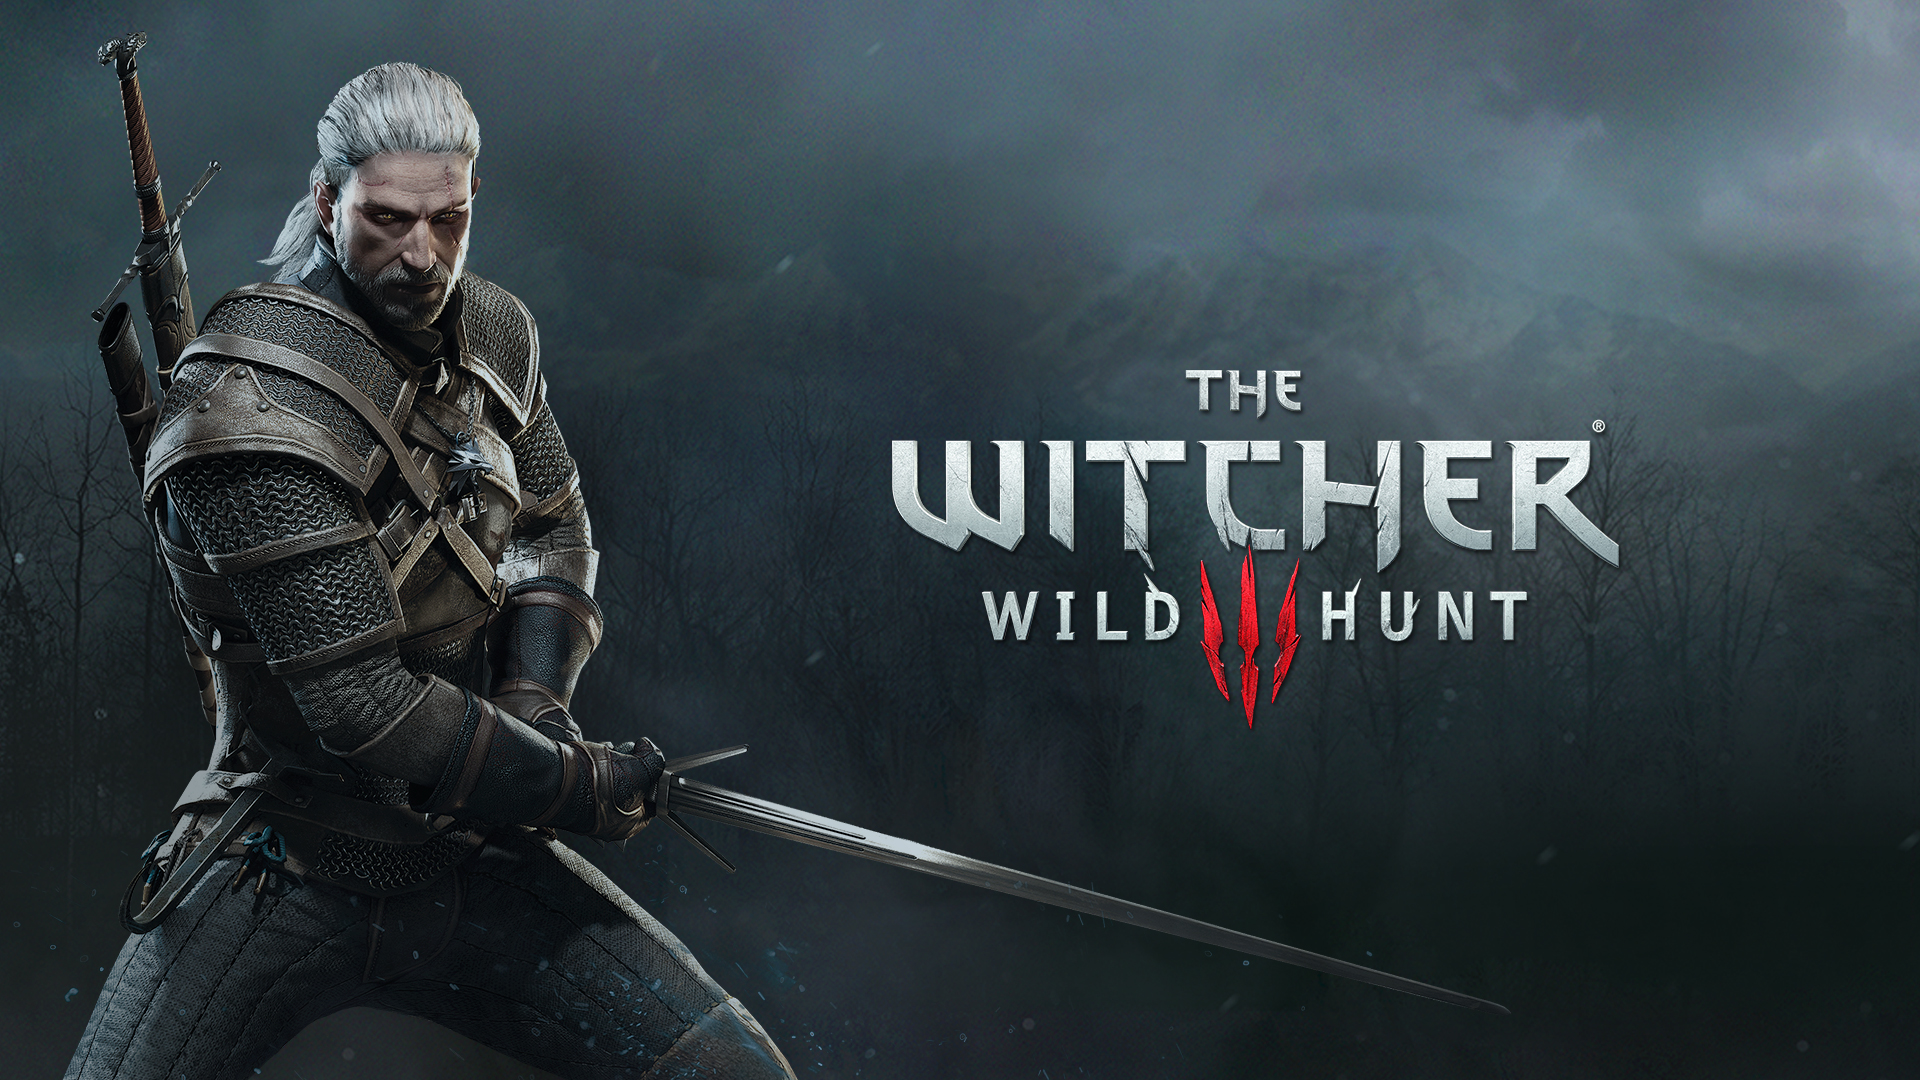 The Witcher 162020 1